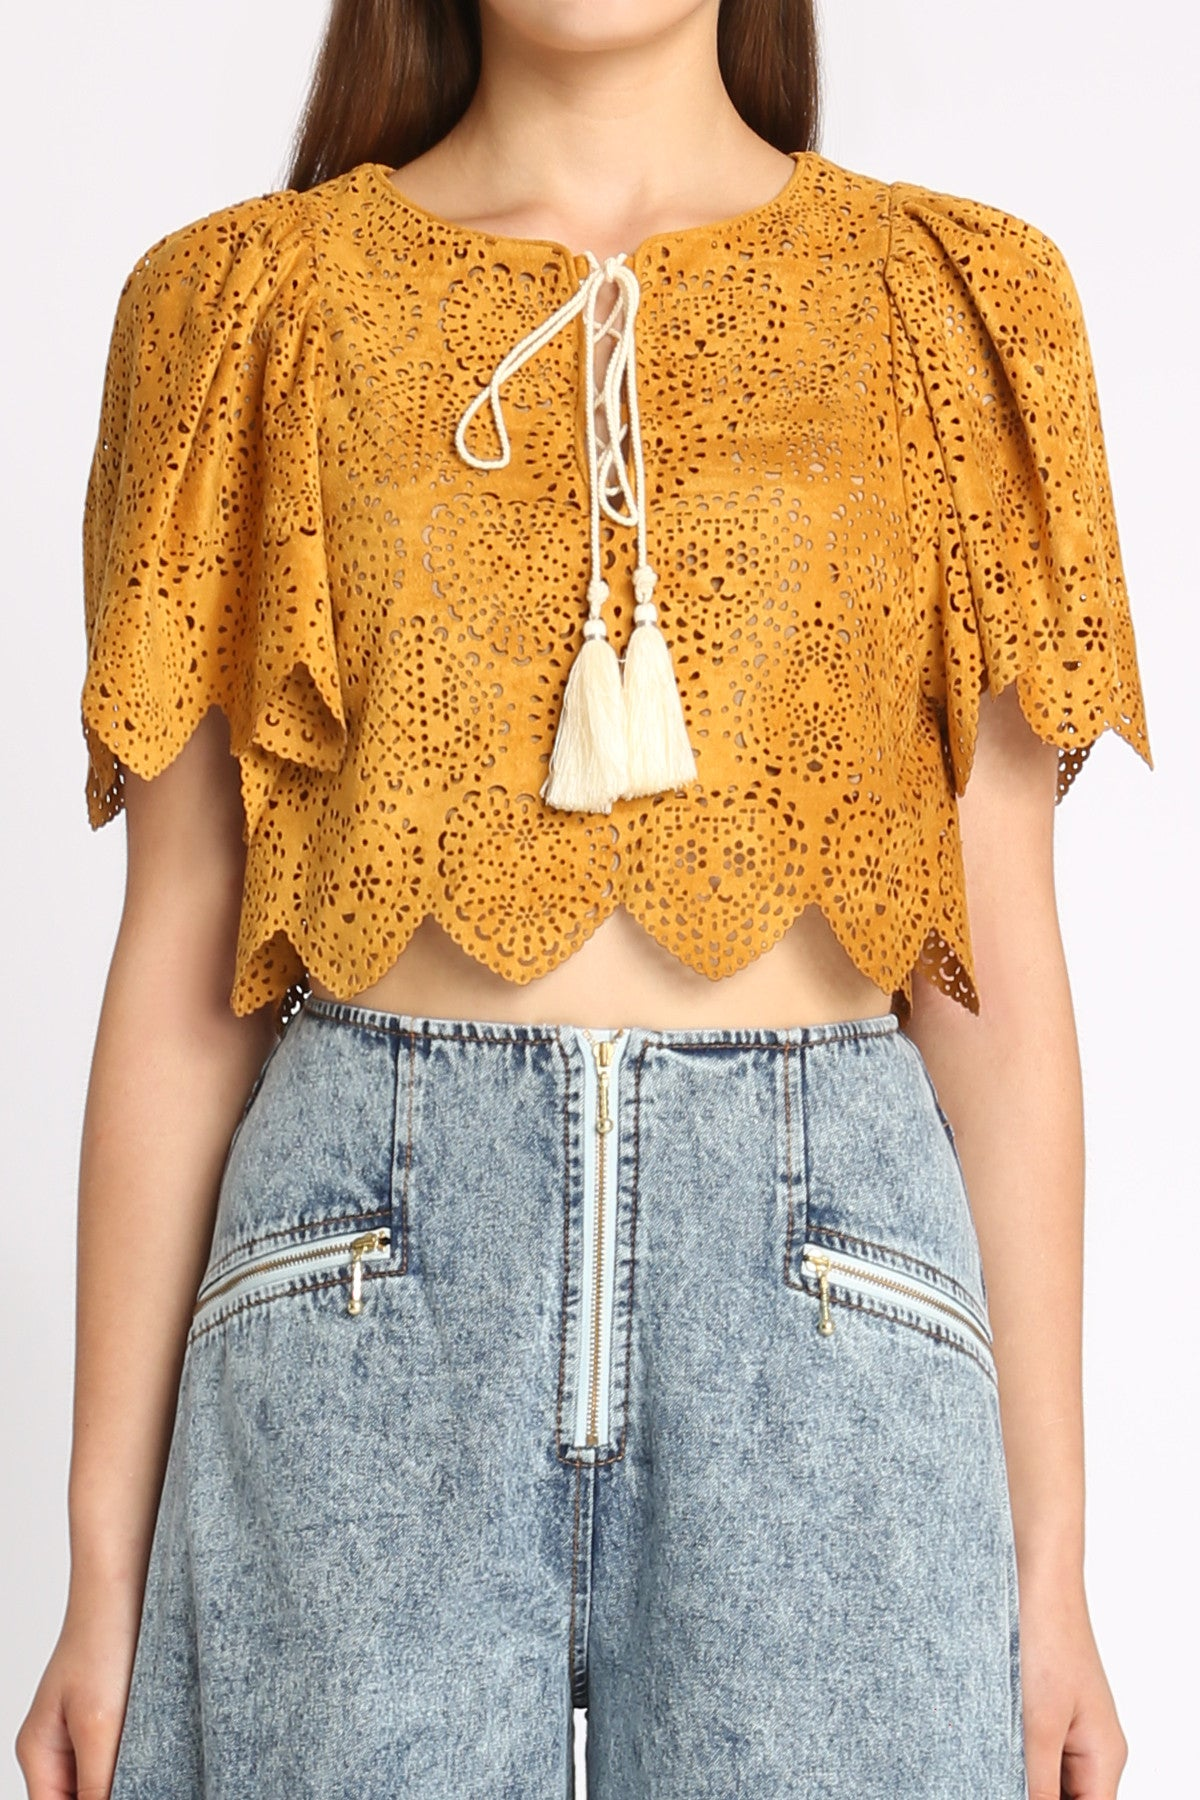 Medeliene Laser Cut Crop Top